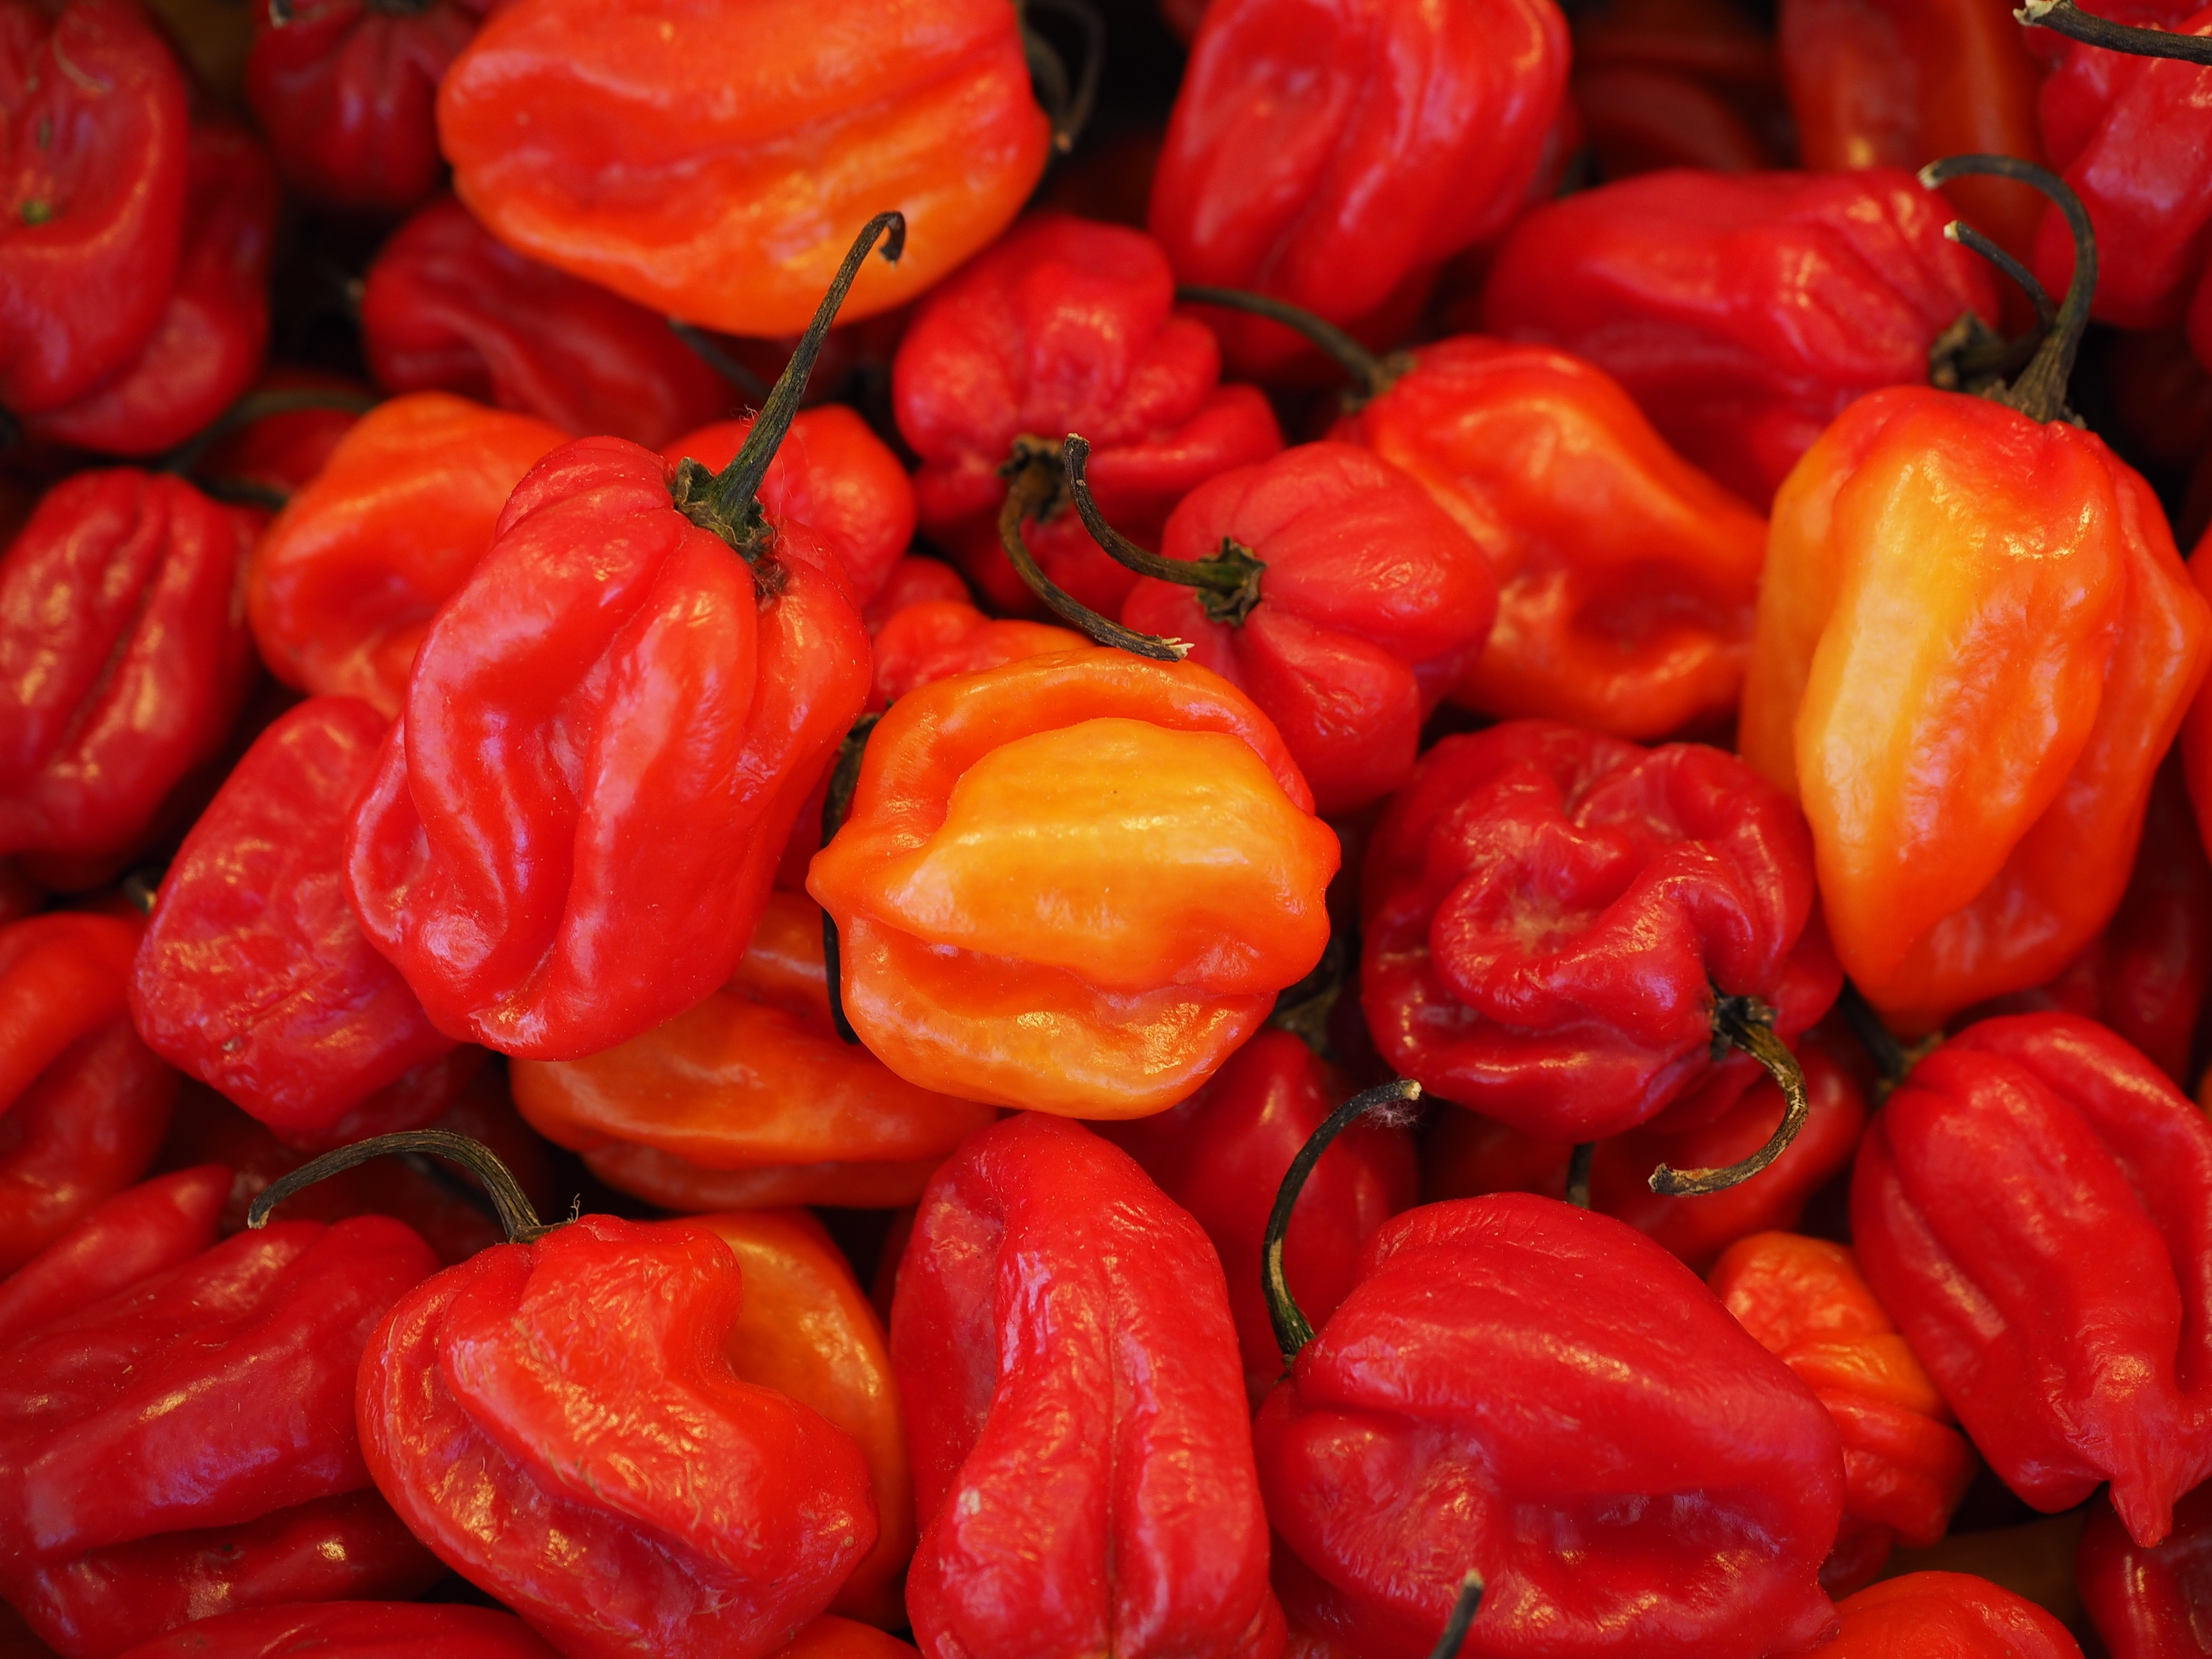 capsicum-chinense-capsicum-peppers-chili